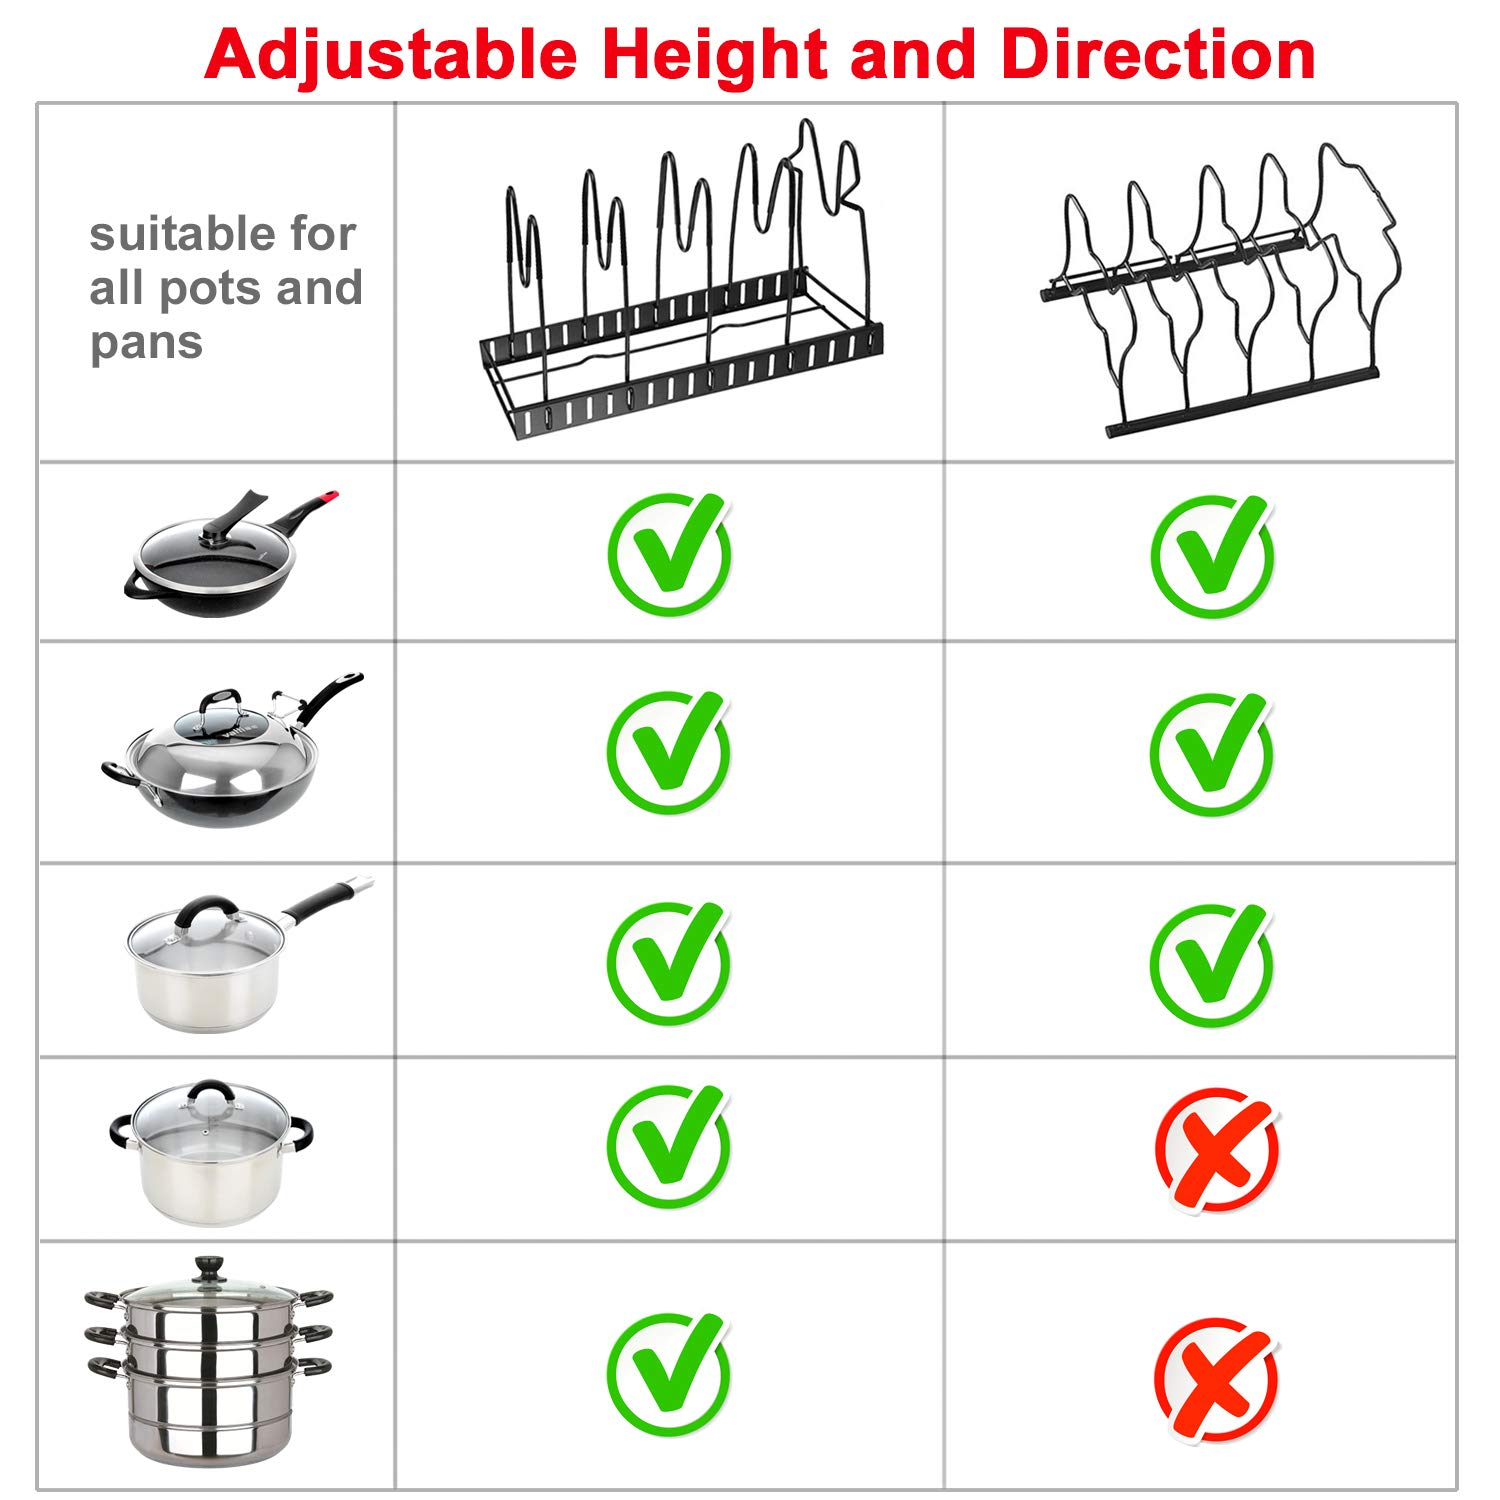 Pot Rack Organizers, G-TING 8 Tiers Pots and Pans Organizer, Adjustable Pot Lid Holders & Pan Rack for Kitchen Counter and Cabinet, Lid Organizer for Pots and Pans With 3 DIY Methods(2019 Upgraded) by G-TING (Image #6)